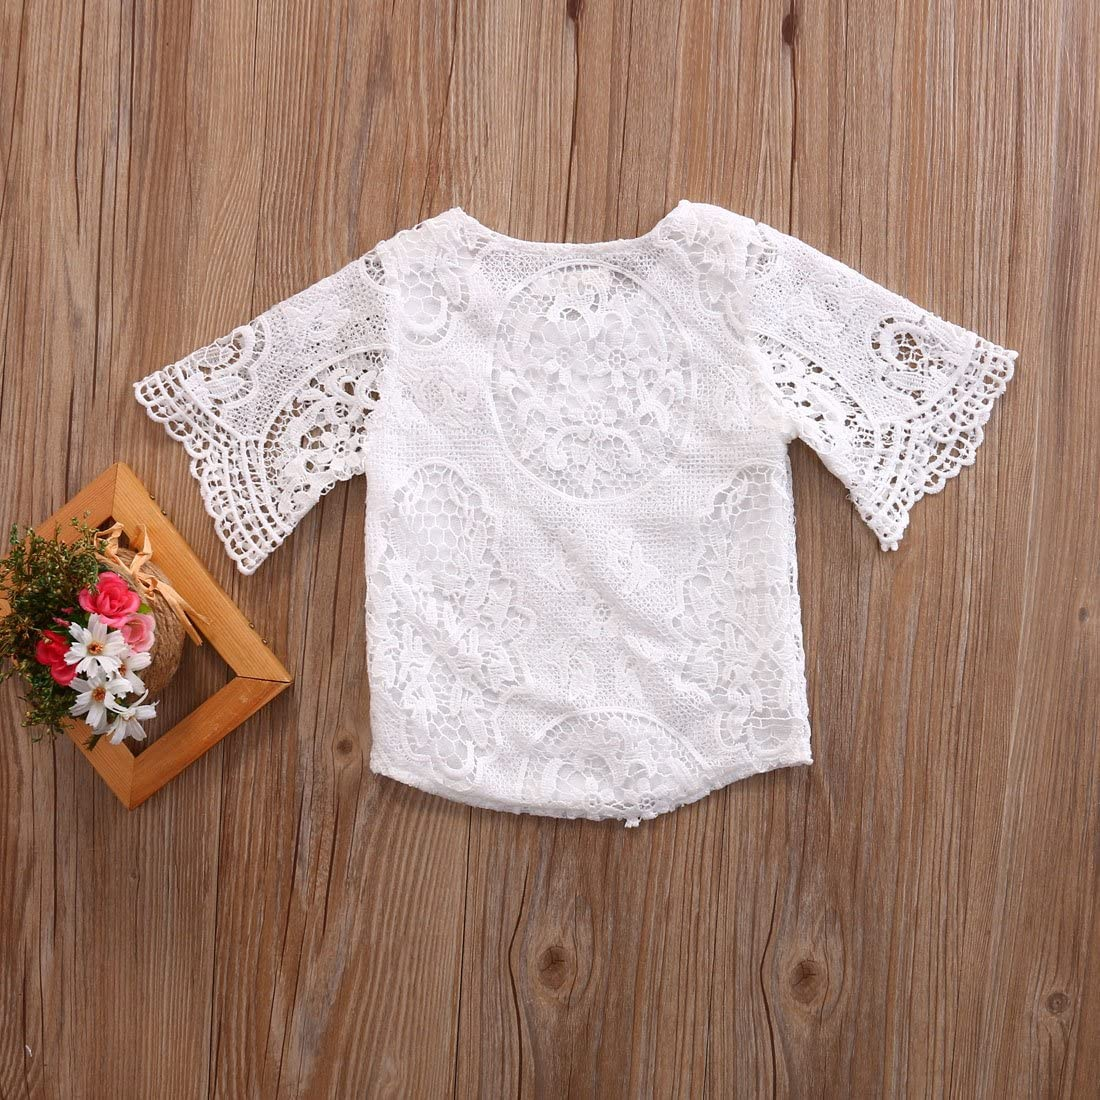 3M-3Y Kids Baby Girls Lace Hollow Tops T-Shirt 1//2 Sleeve Blouse White Outfit Set